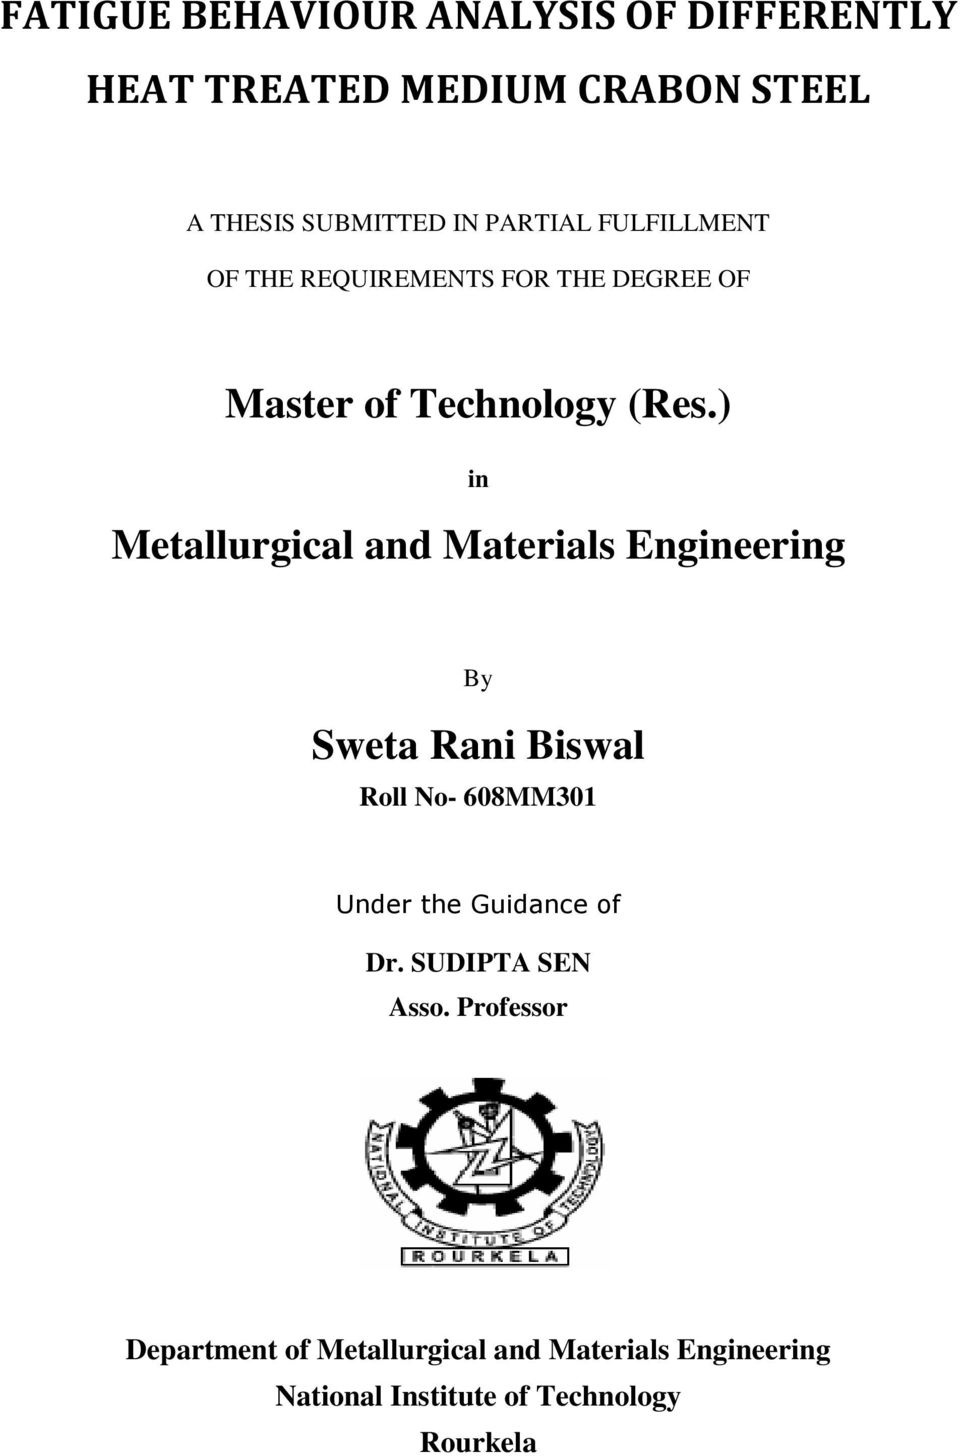 ) in Metallurgical and Materials Engineering By Sweta Rani Biswal Roll No- 608MM301 Under the Guidance